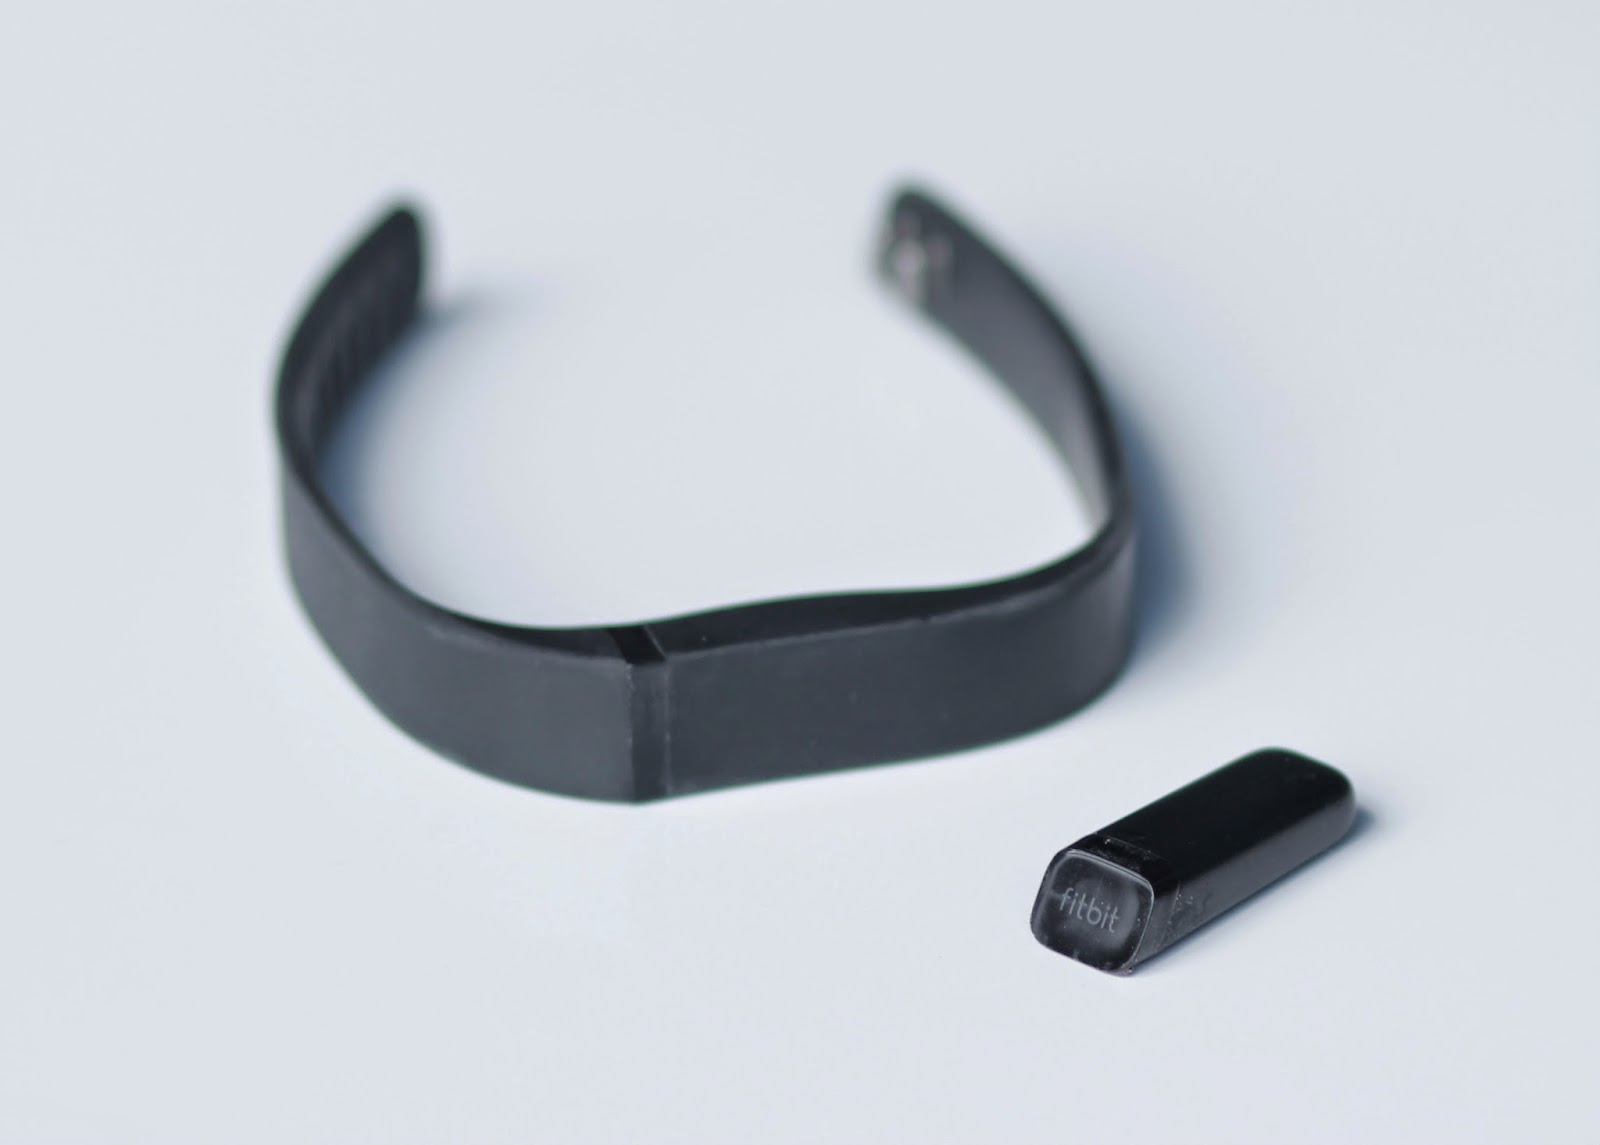 FitBit certainly not a fashion accessory